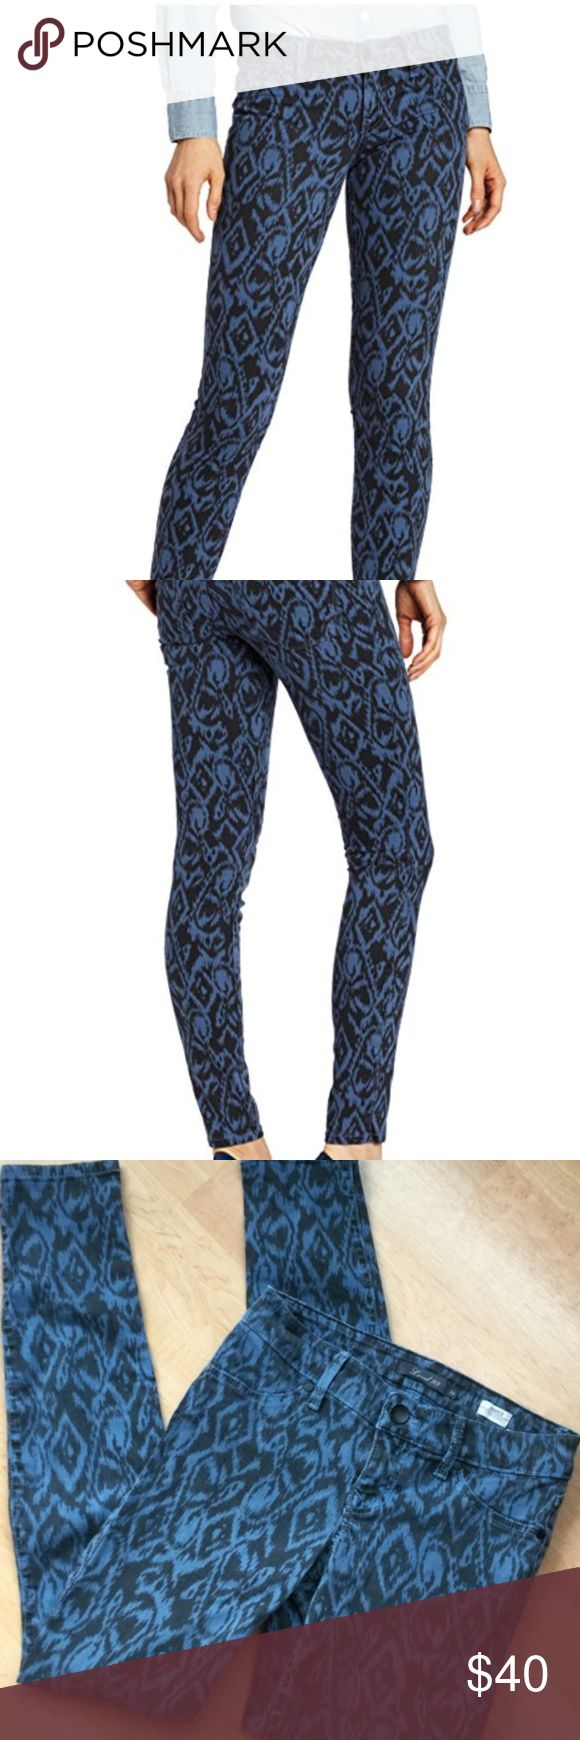 "Level 99 Janice Ultra Skinny ""Macaw"" Jeans SZ 26 Women's size 26 Level 99 Janice Ultra Skinny printed stretchy jeans. Jeans have a fun aztec print pattern. Fabric is a muted blue and black color. Retailed for $110 at Nordstrom.   Measurements  Waist: 13.5 inches  Inseam: 30 inches Rise: 7.5 inches   Fast shipping - same or next business day. Thanks! Level 99 Jeans Skinny"